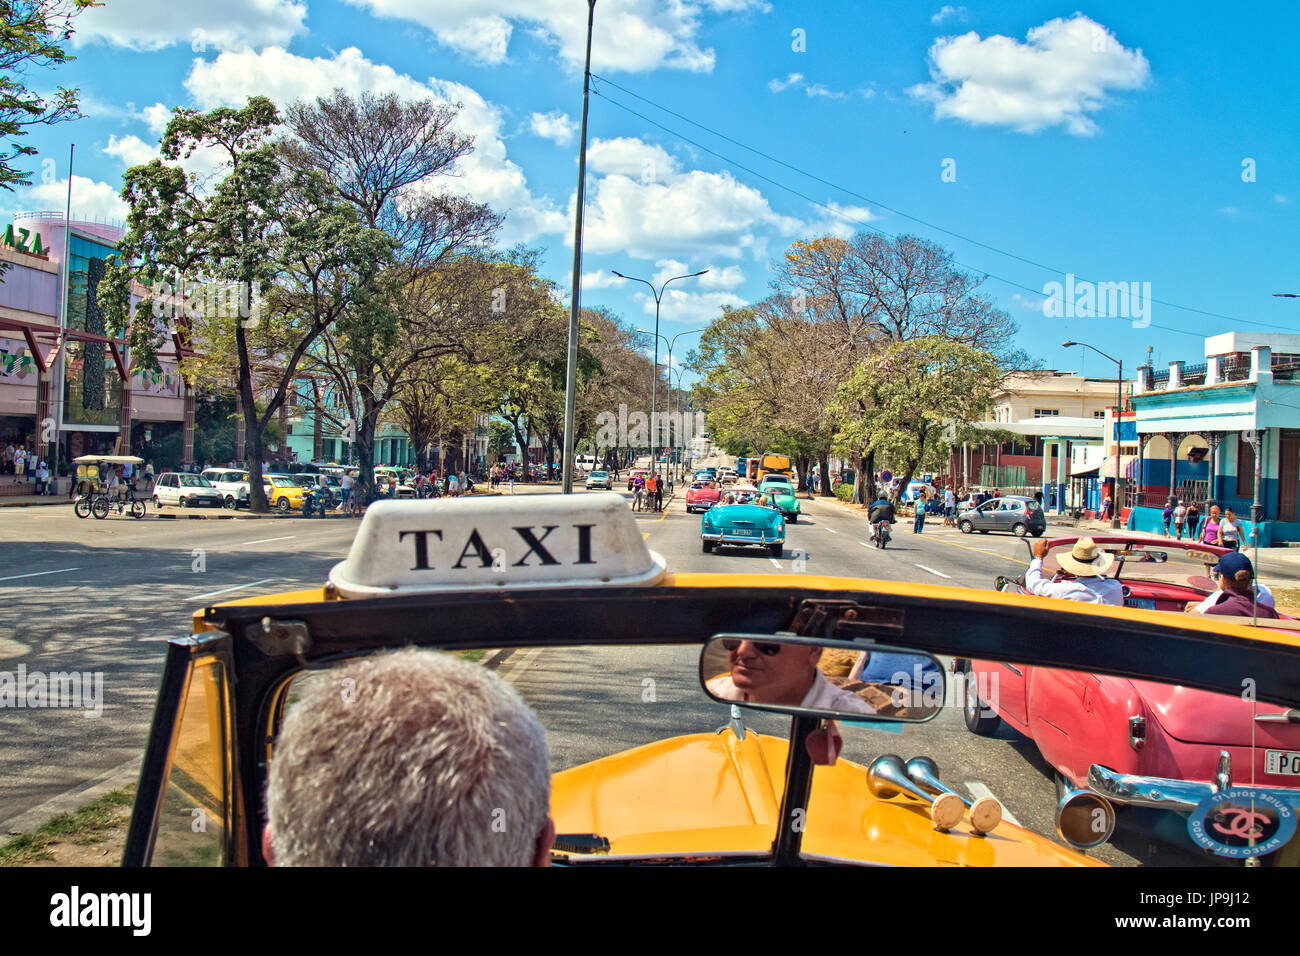 Convertible taxicab driving through the streets of Havana, Cuba. - Stock Image